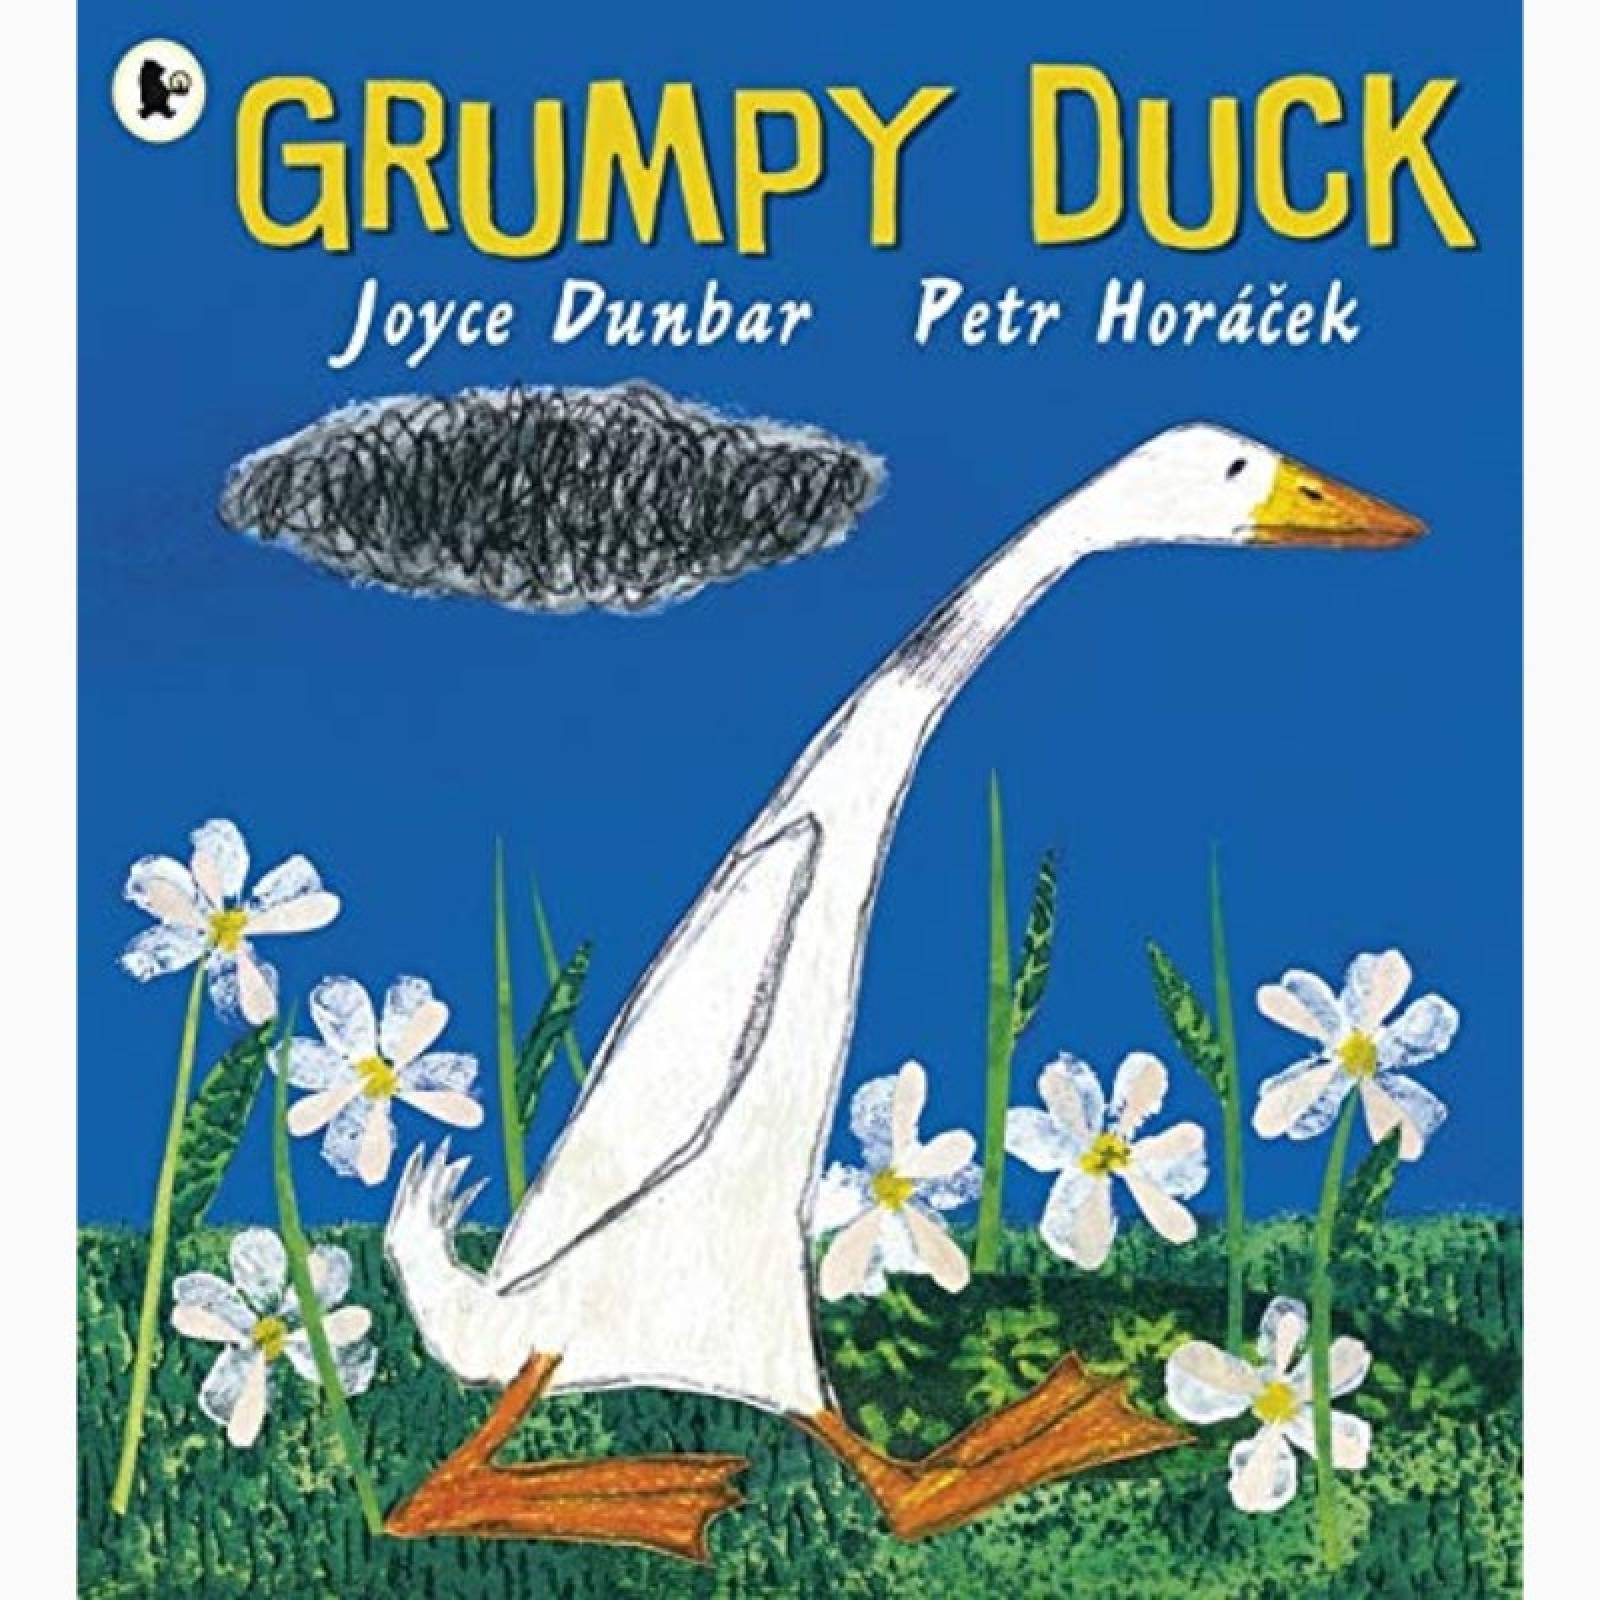 Grumpy Duck - Paperback Book thumbnails